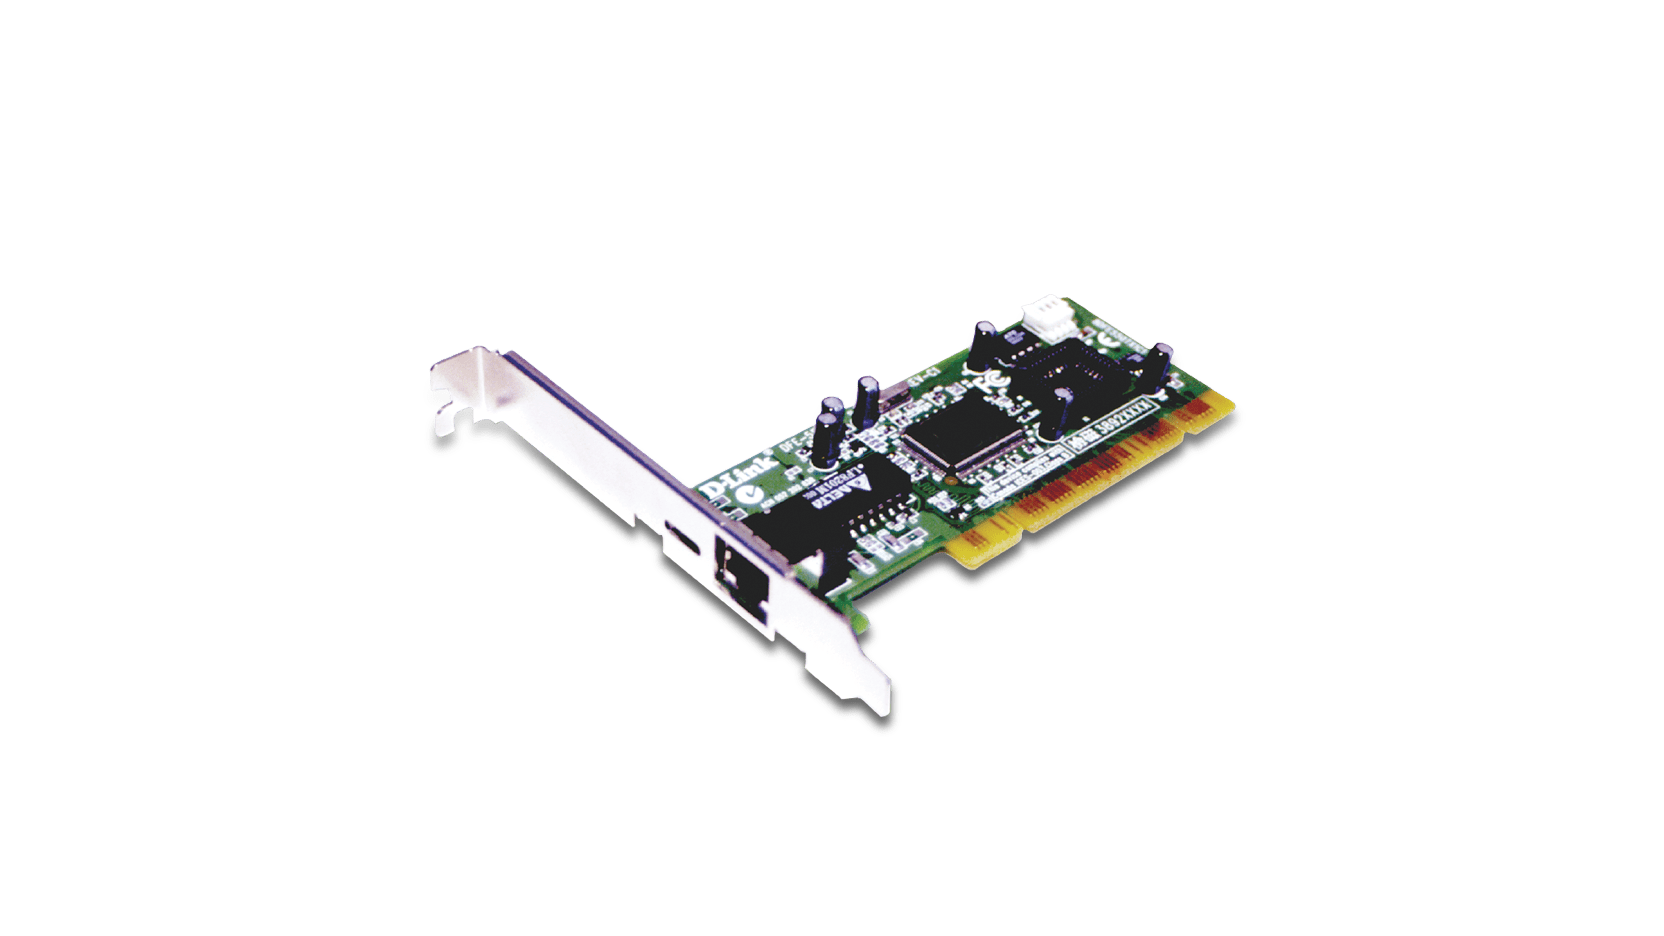 Dfe 550tx Fast Ethernet Wol Pci Adapter